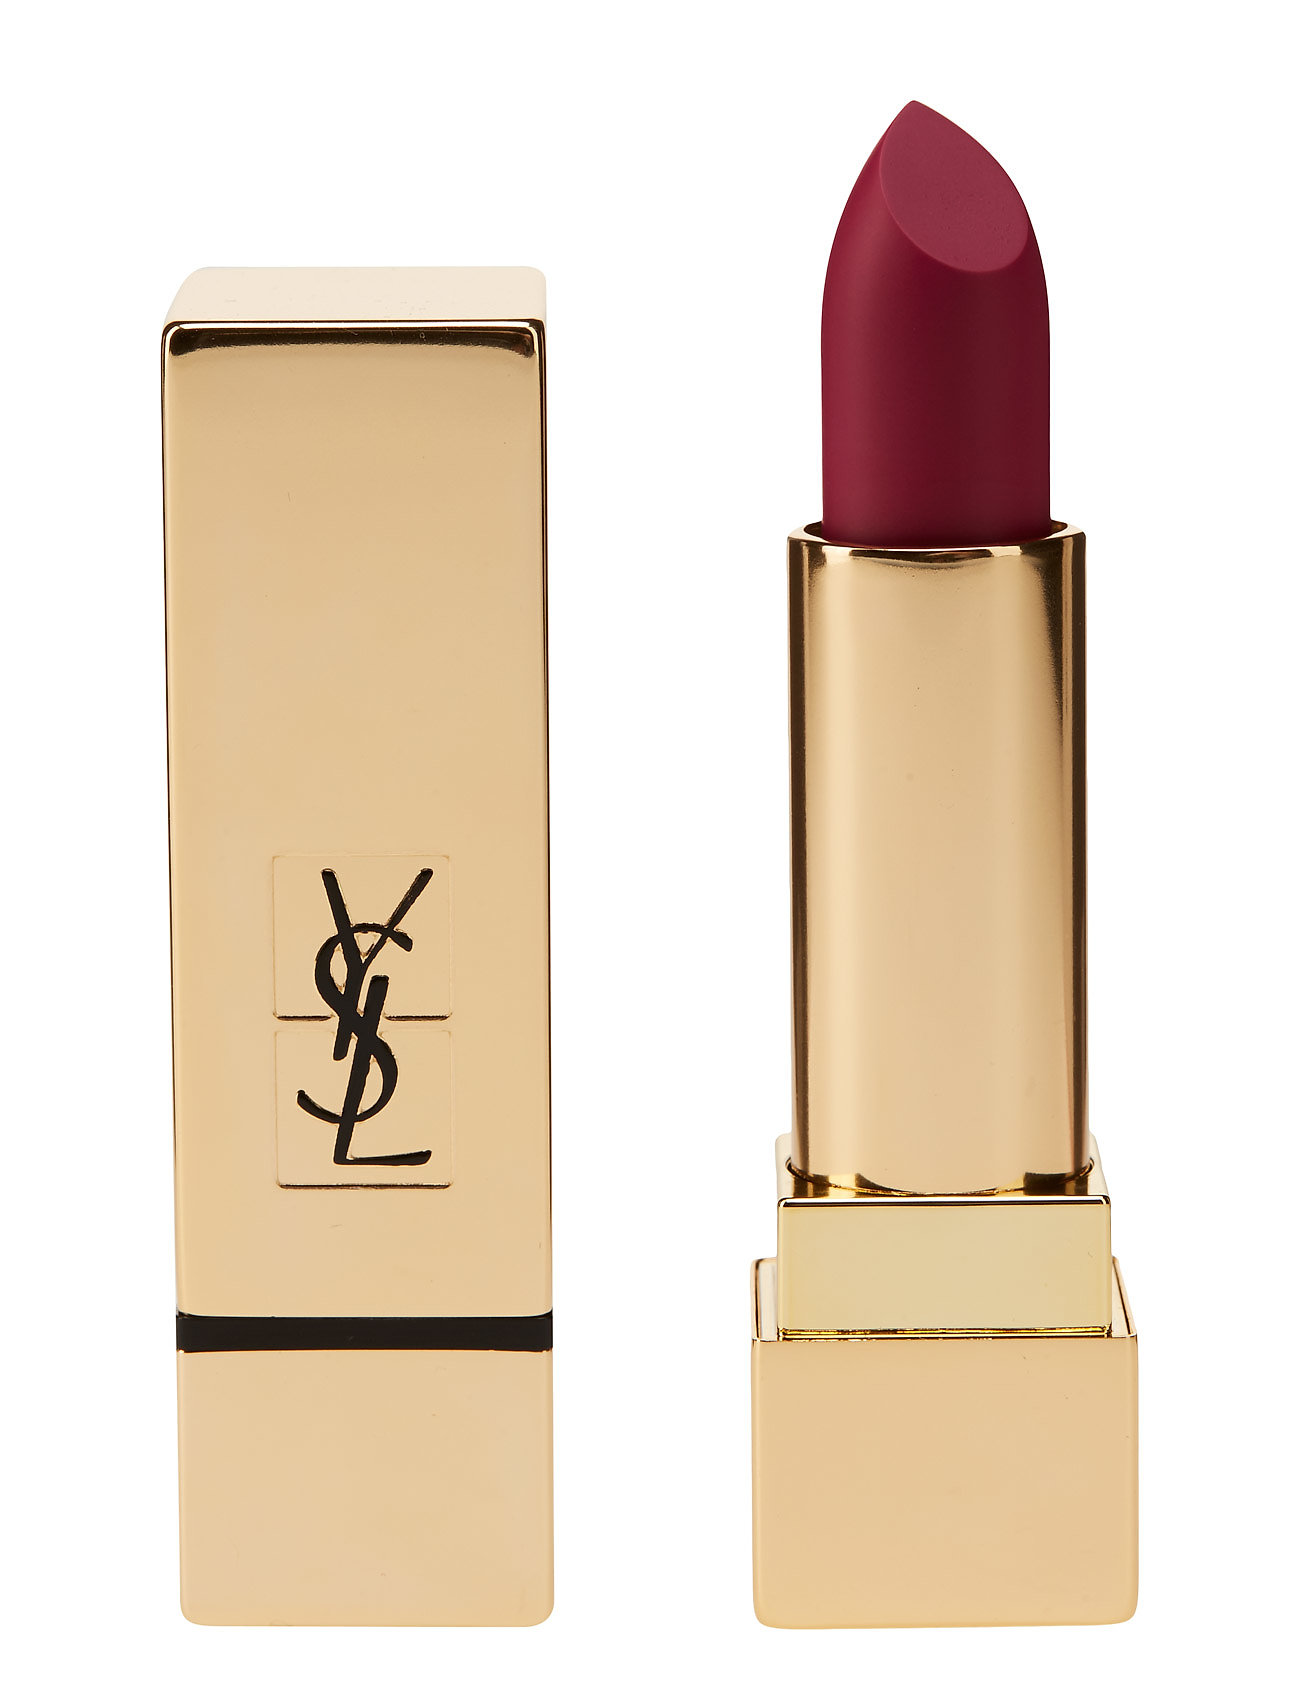 Rouge pur couture the mats fra yves saint laurent fra boozt.com dk